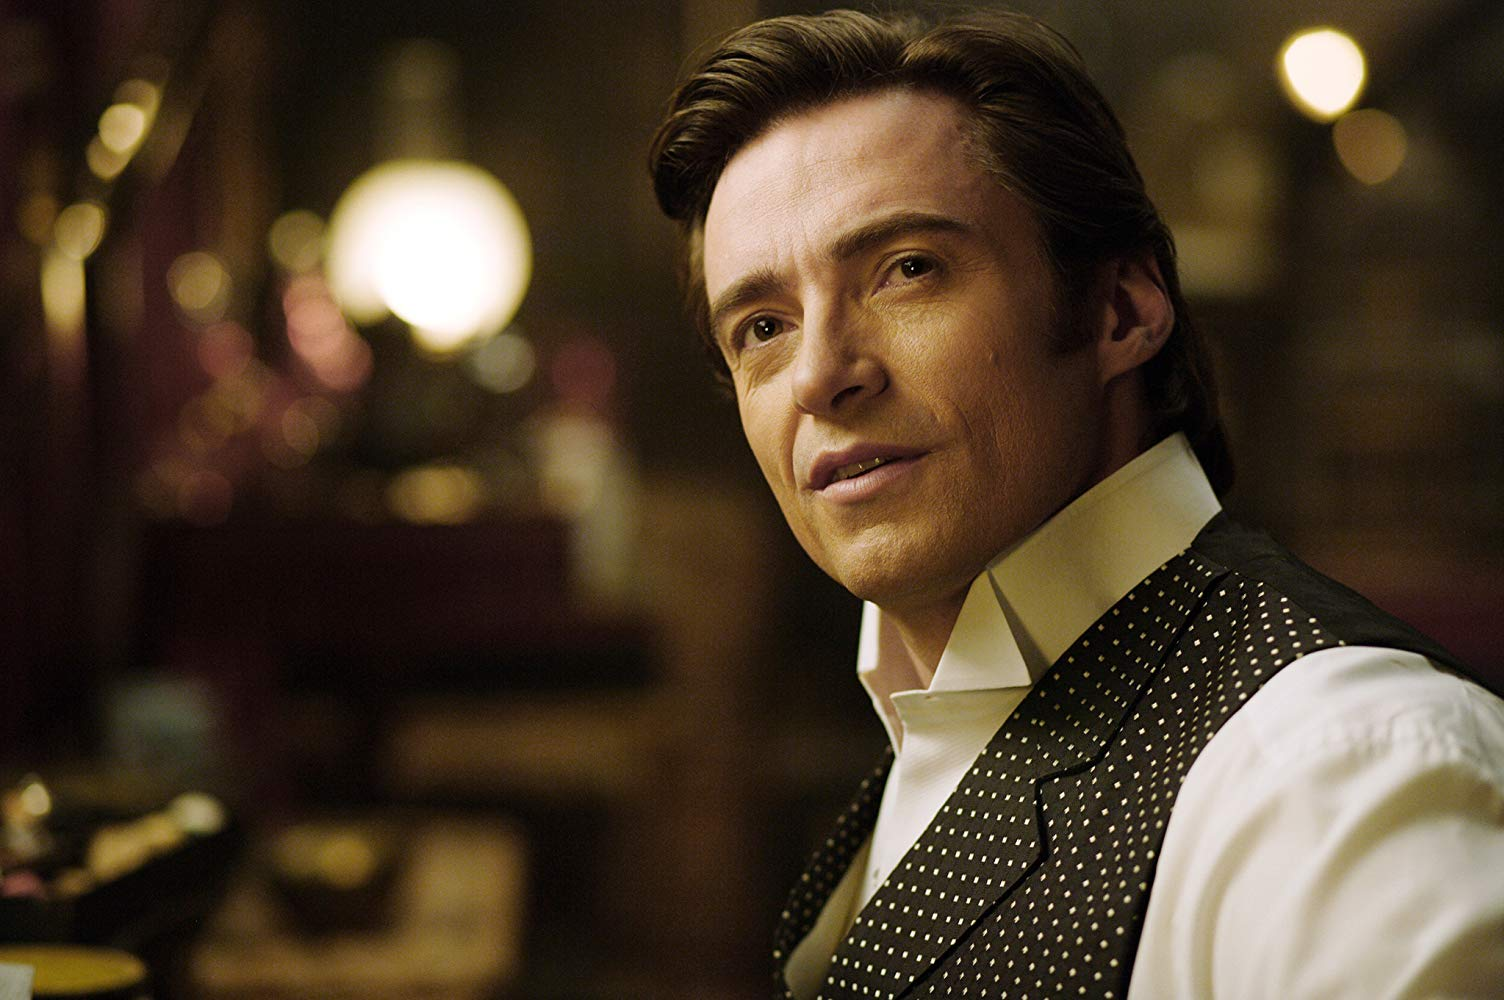 Hugh Jackman as Robert Angier in The Prestige (2006)